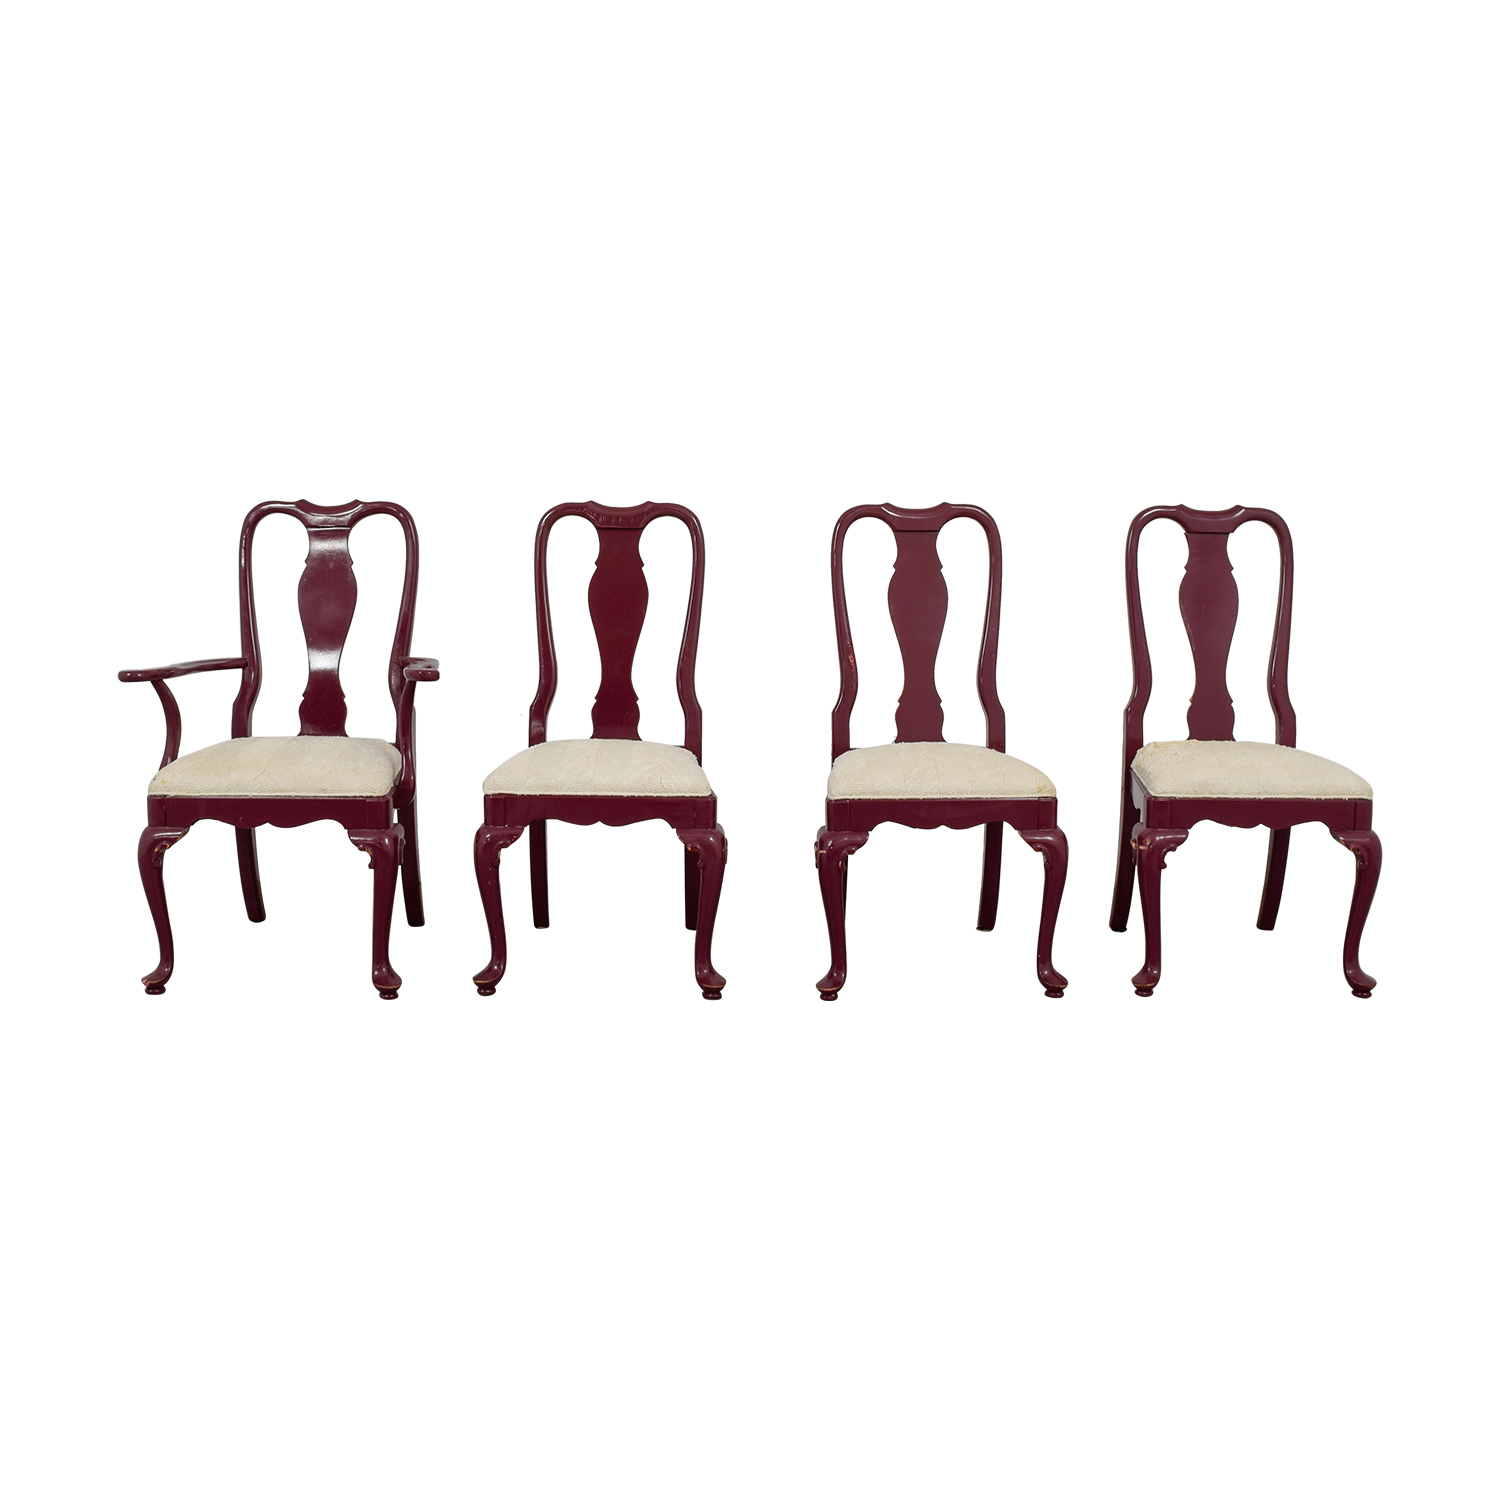 Century Chair Co Century Chair Co Carved Wood Chairs and Arm Chair coupon